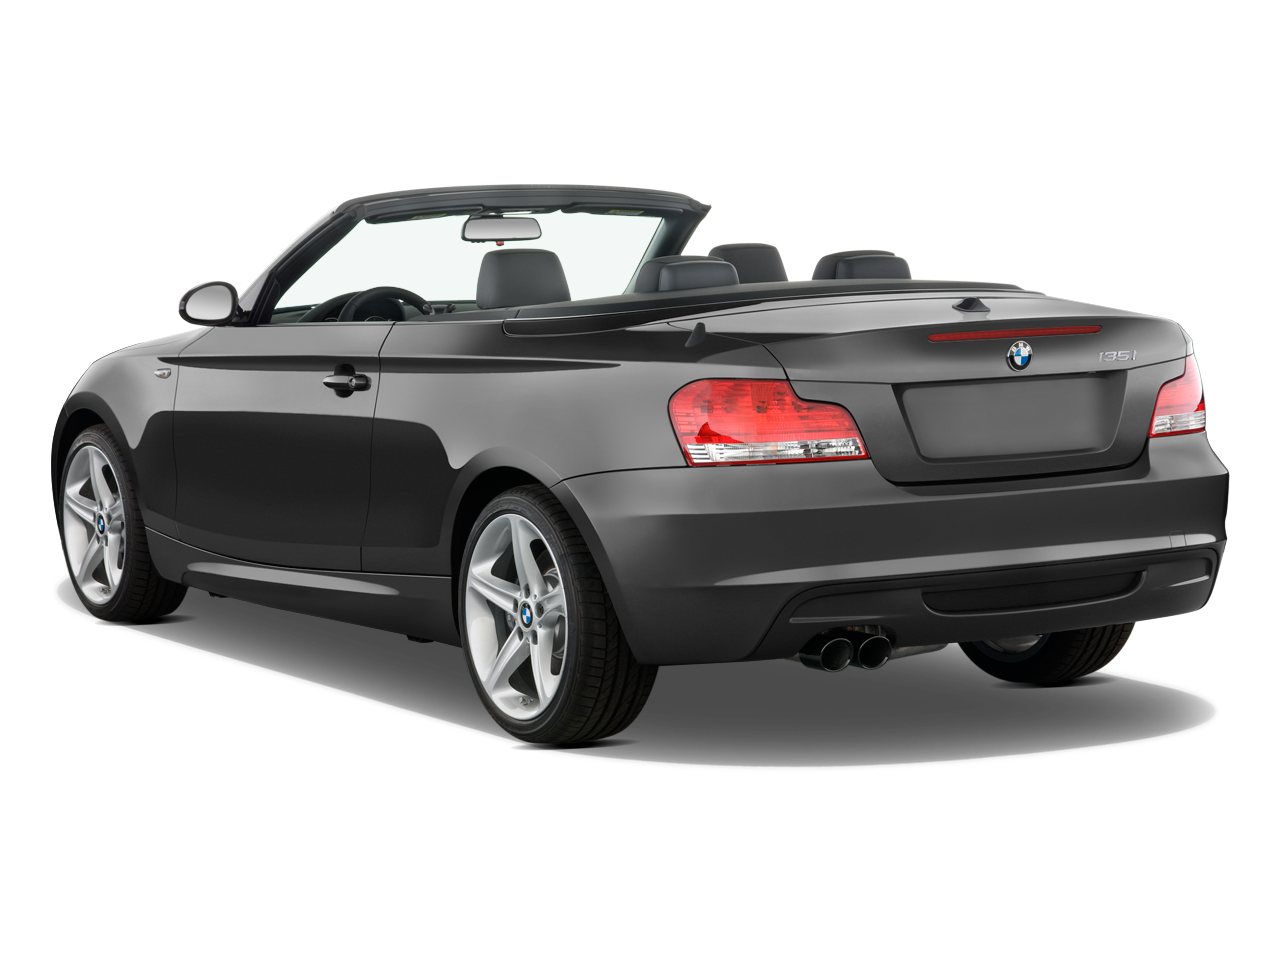 2009 BMW 128i Convertible - BMW Luxury Convertible Review ...